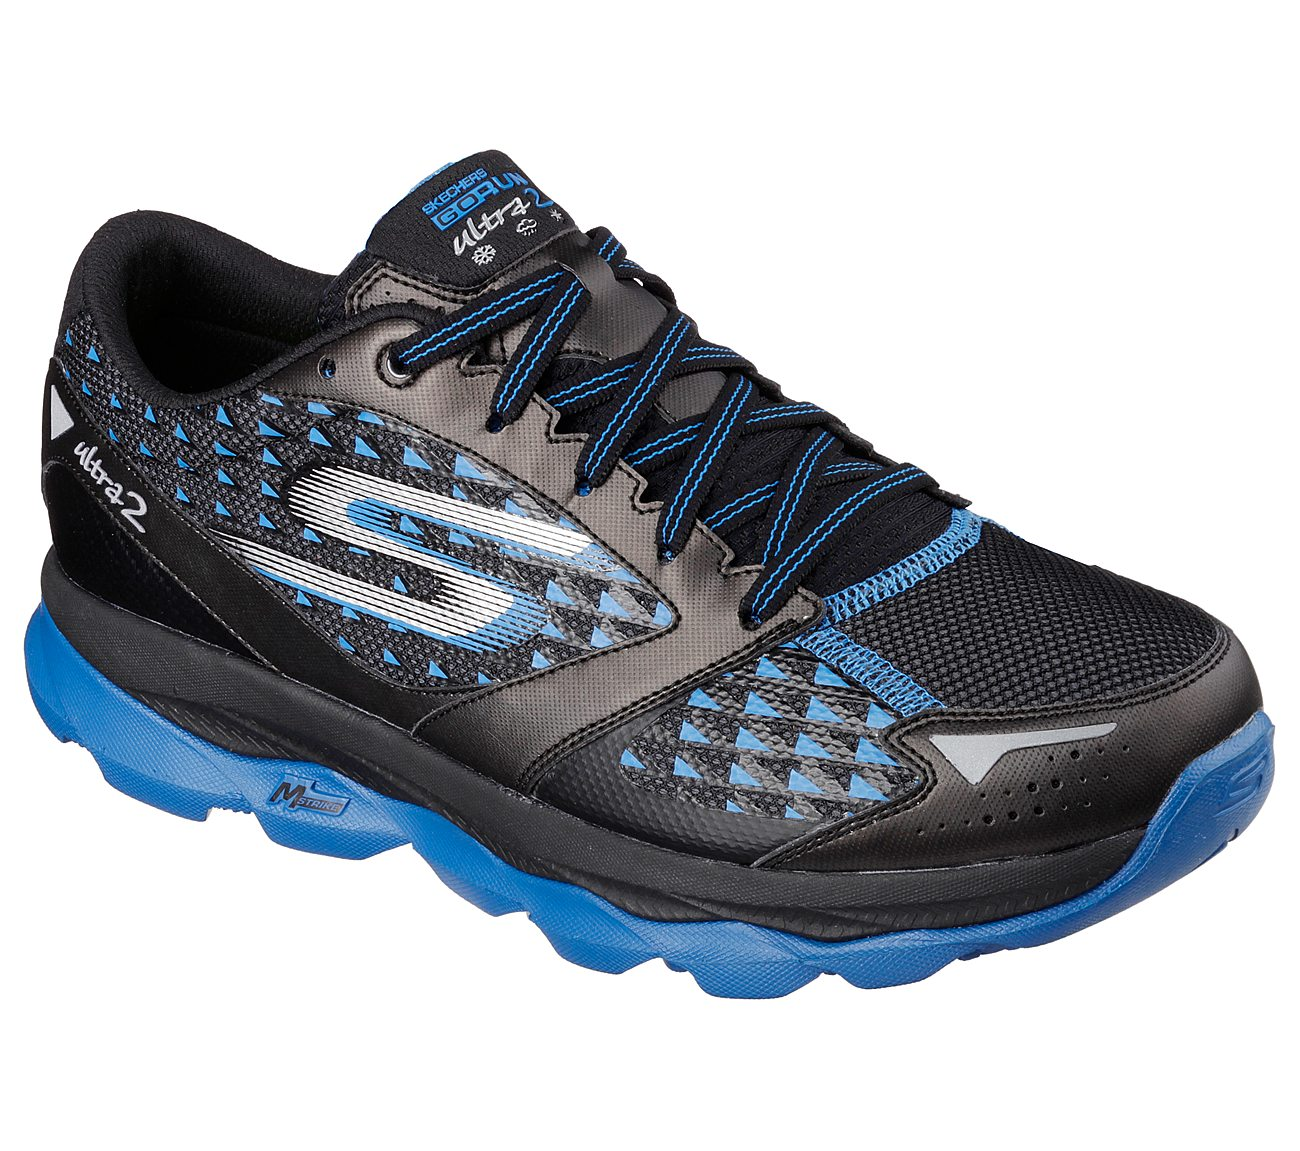 Skechers Go Run Ultra 2 Running Shoes X77a6182